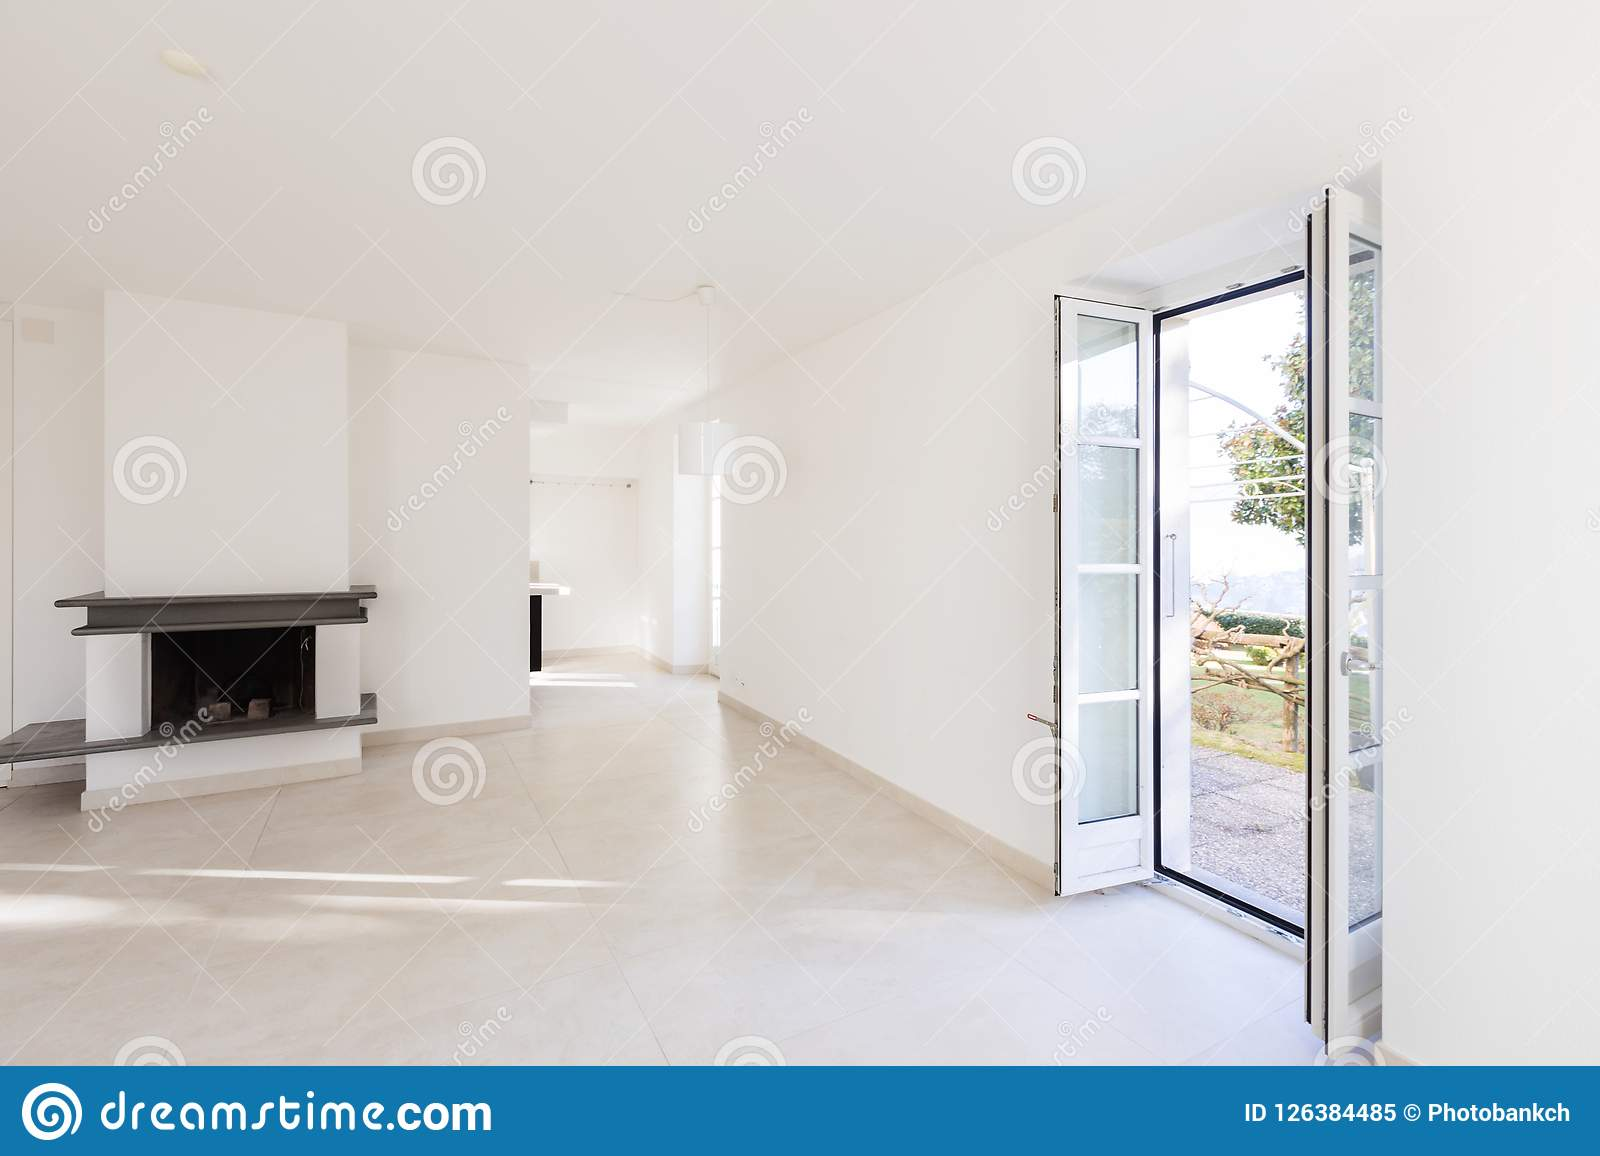 Interiors Of Modern House, Empty Room Stock Image , Image of